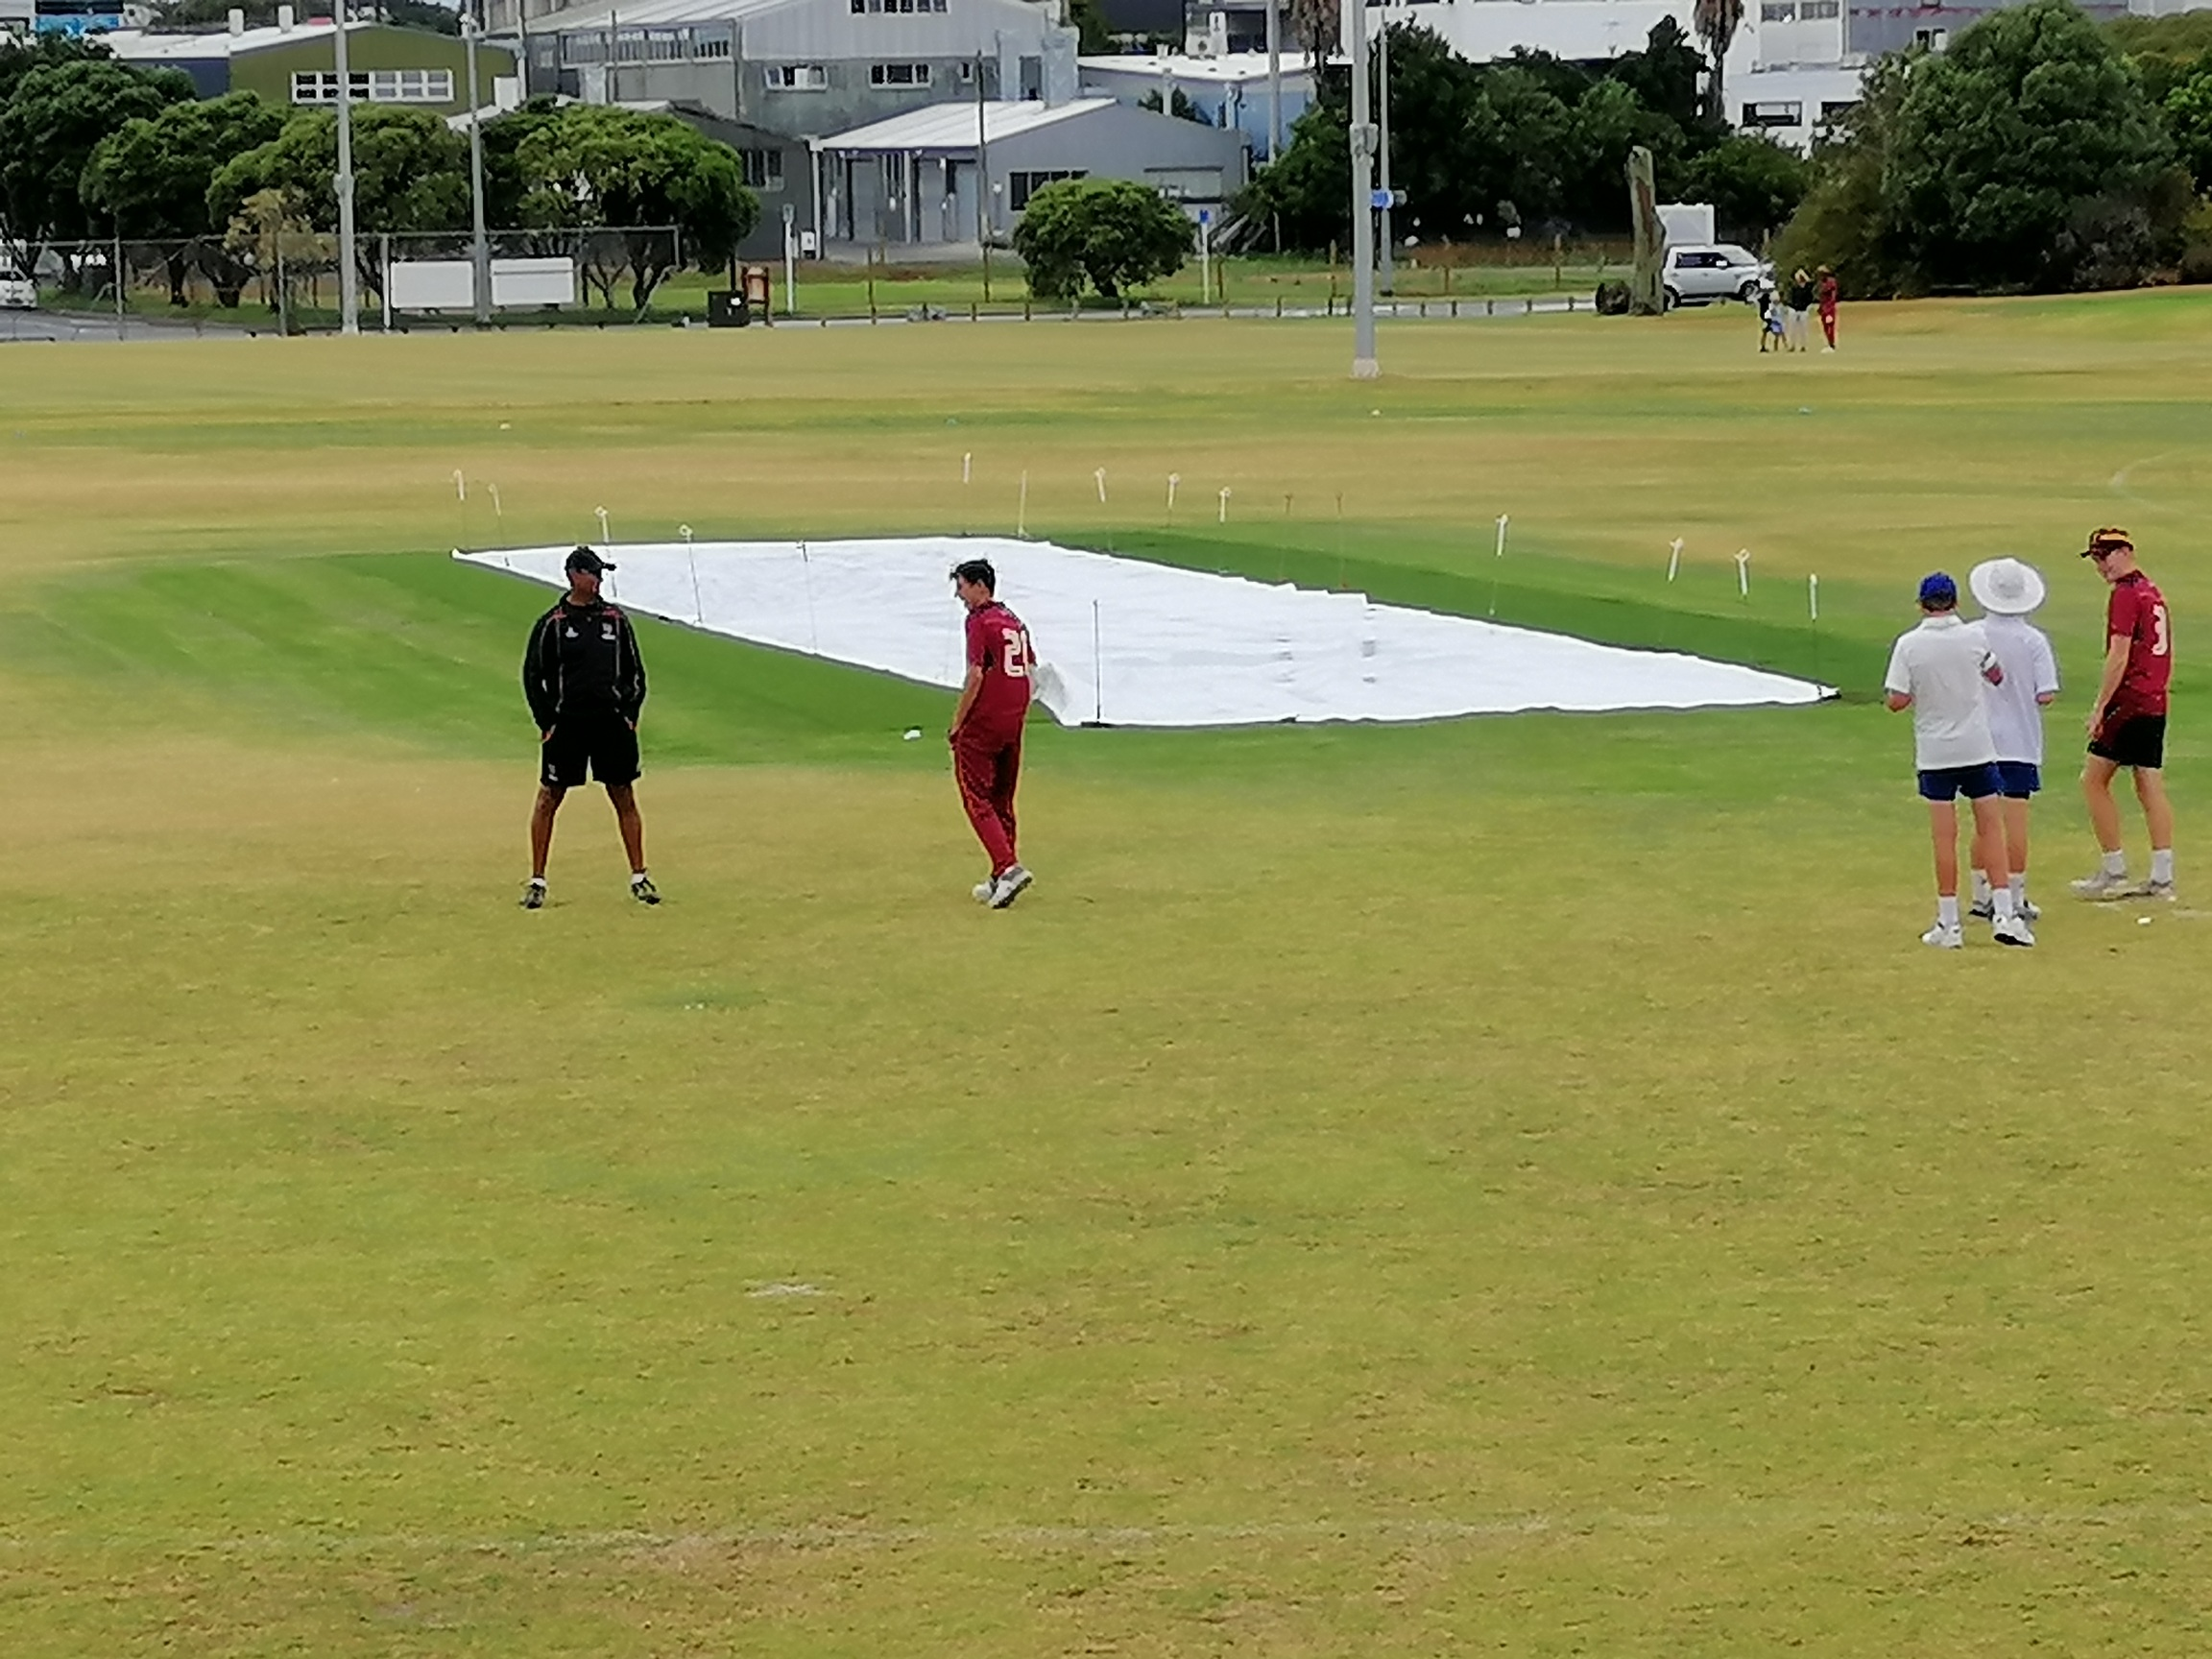 The Covers Stay On After The 16Th Over Till After Lunch The Match Was Interrupted 4 Occasions And Rain Dominated Proceedings For Most Of The Morning